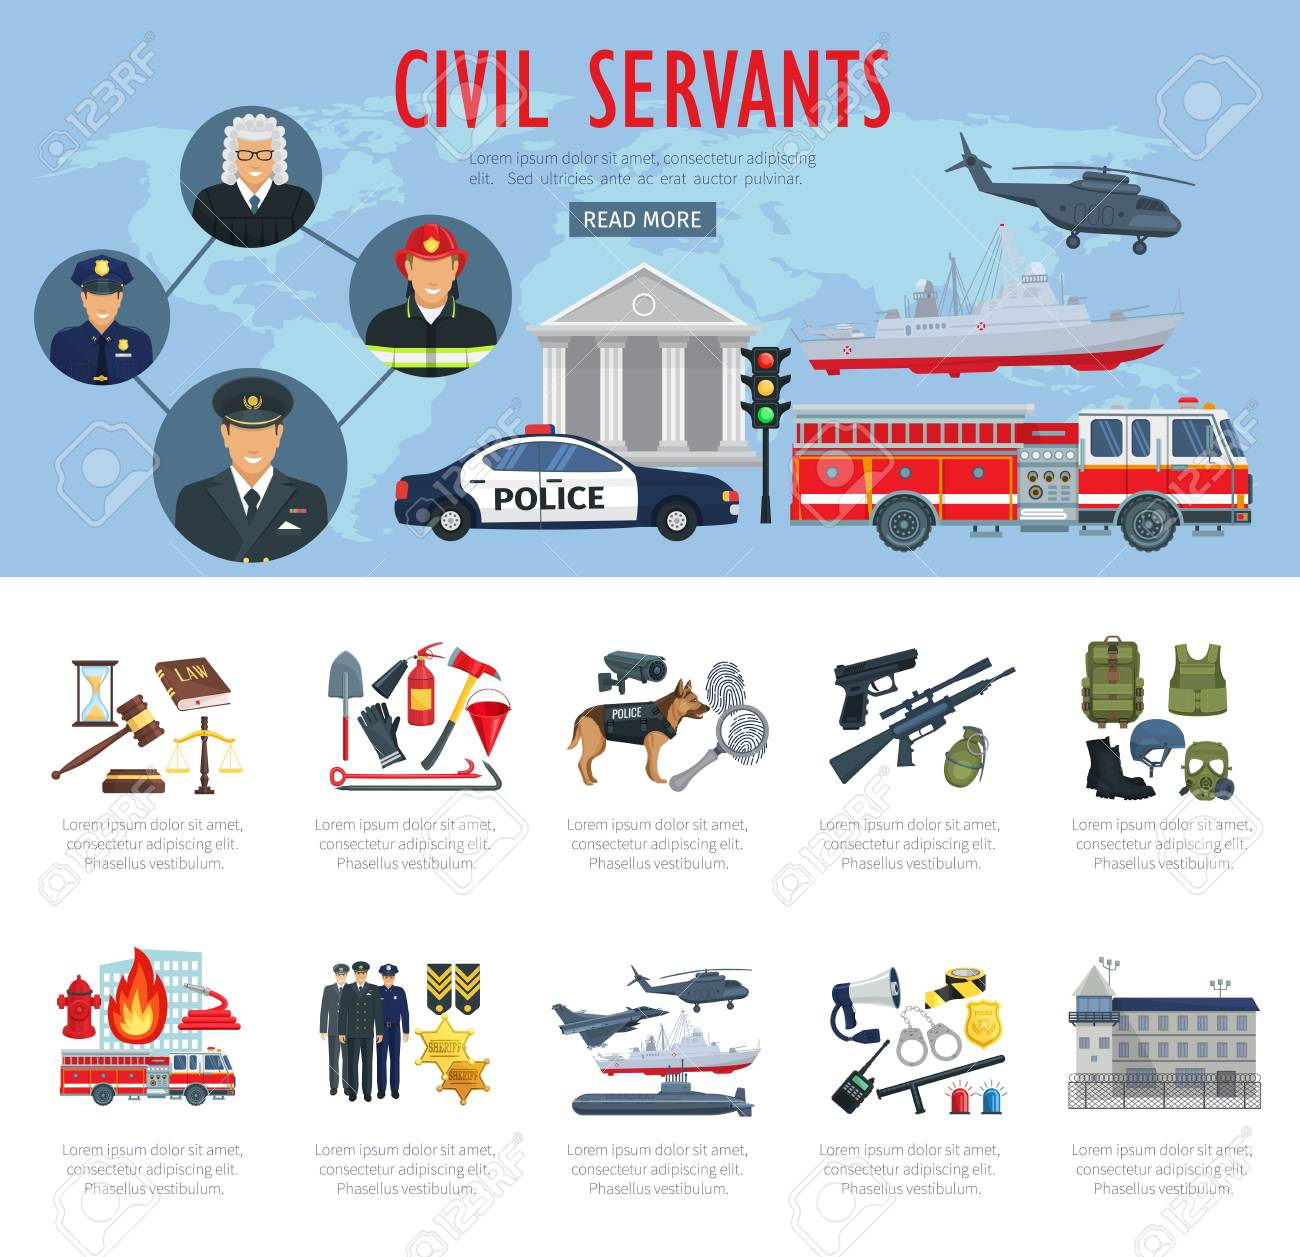 Poster of civil servants, judge, police and aviation - 84969532